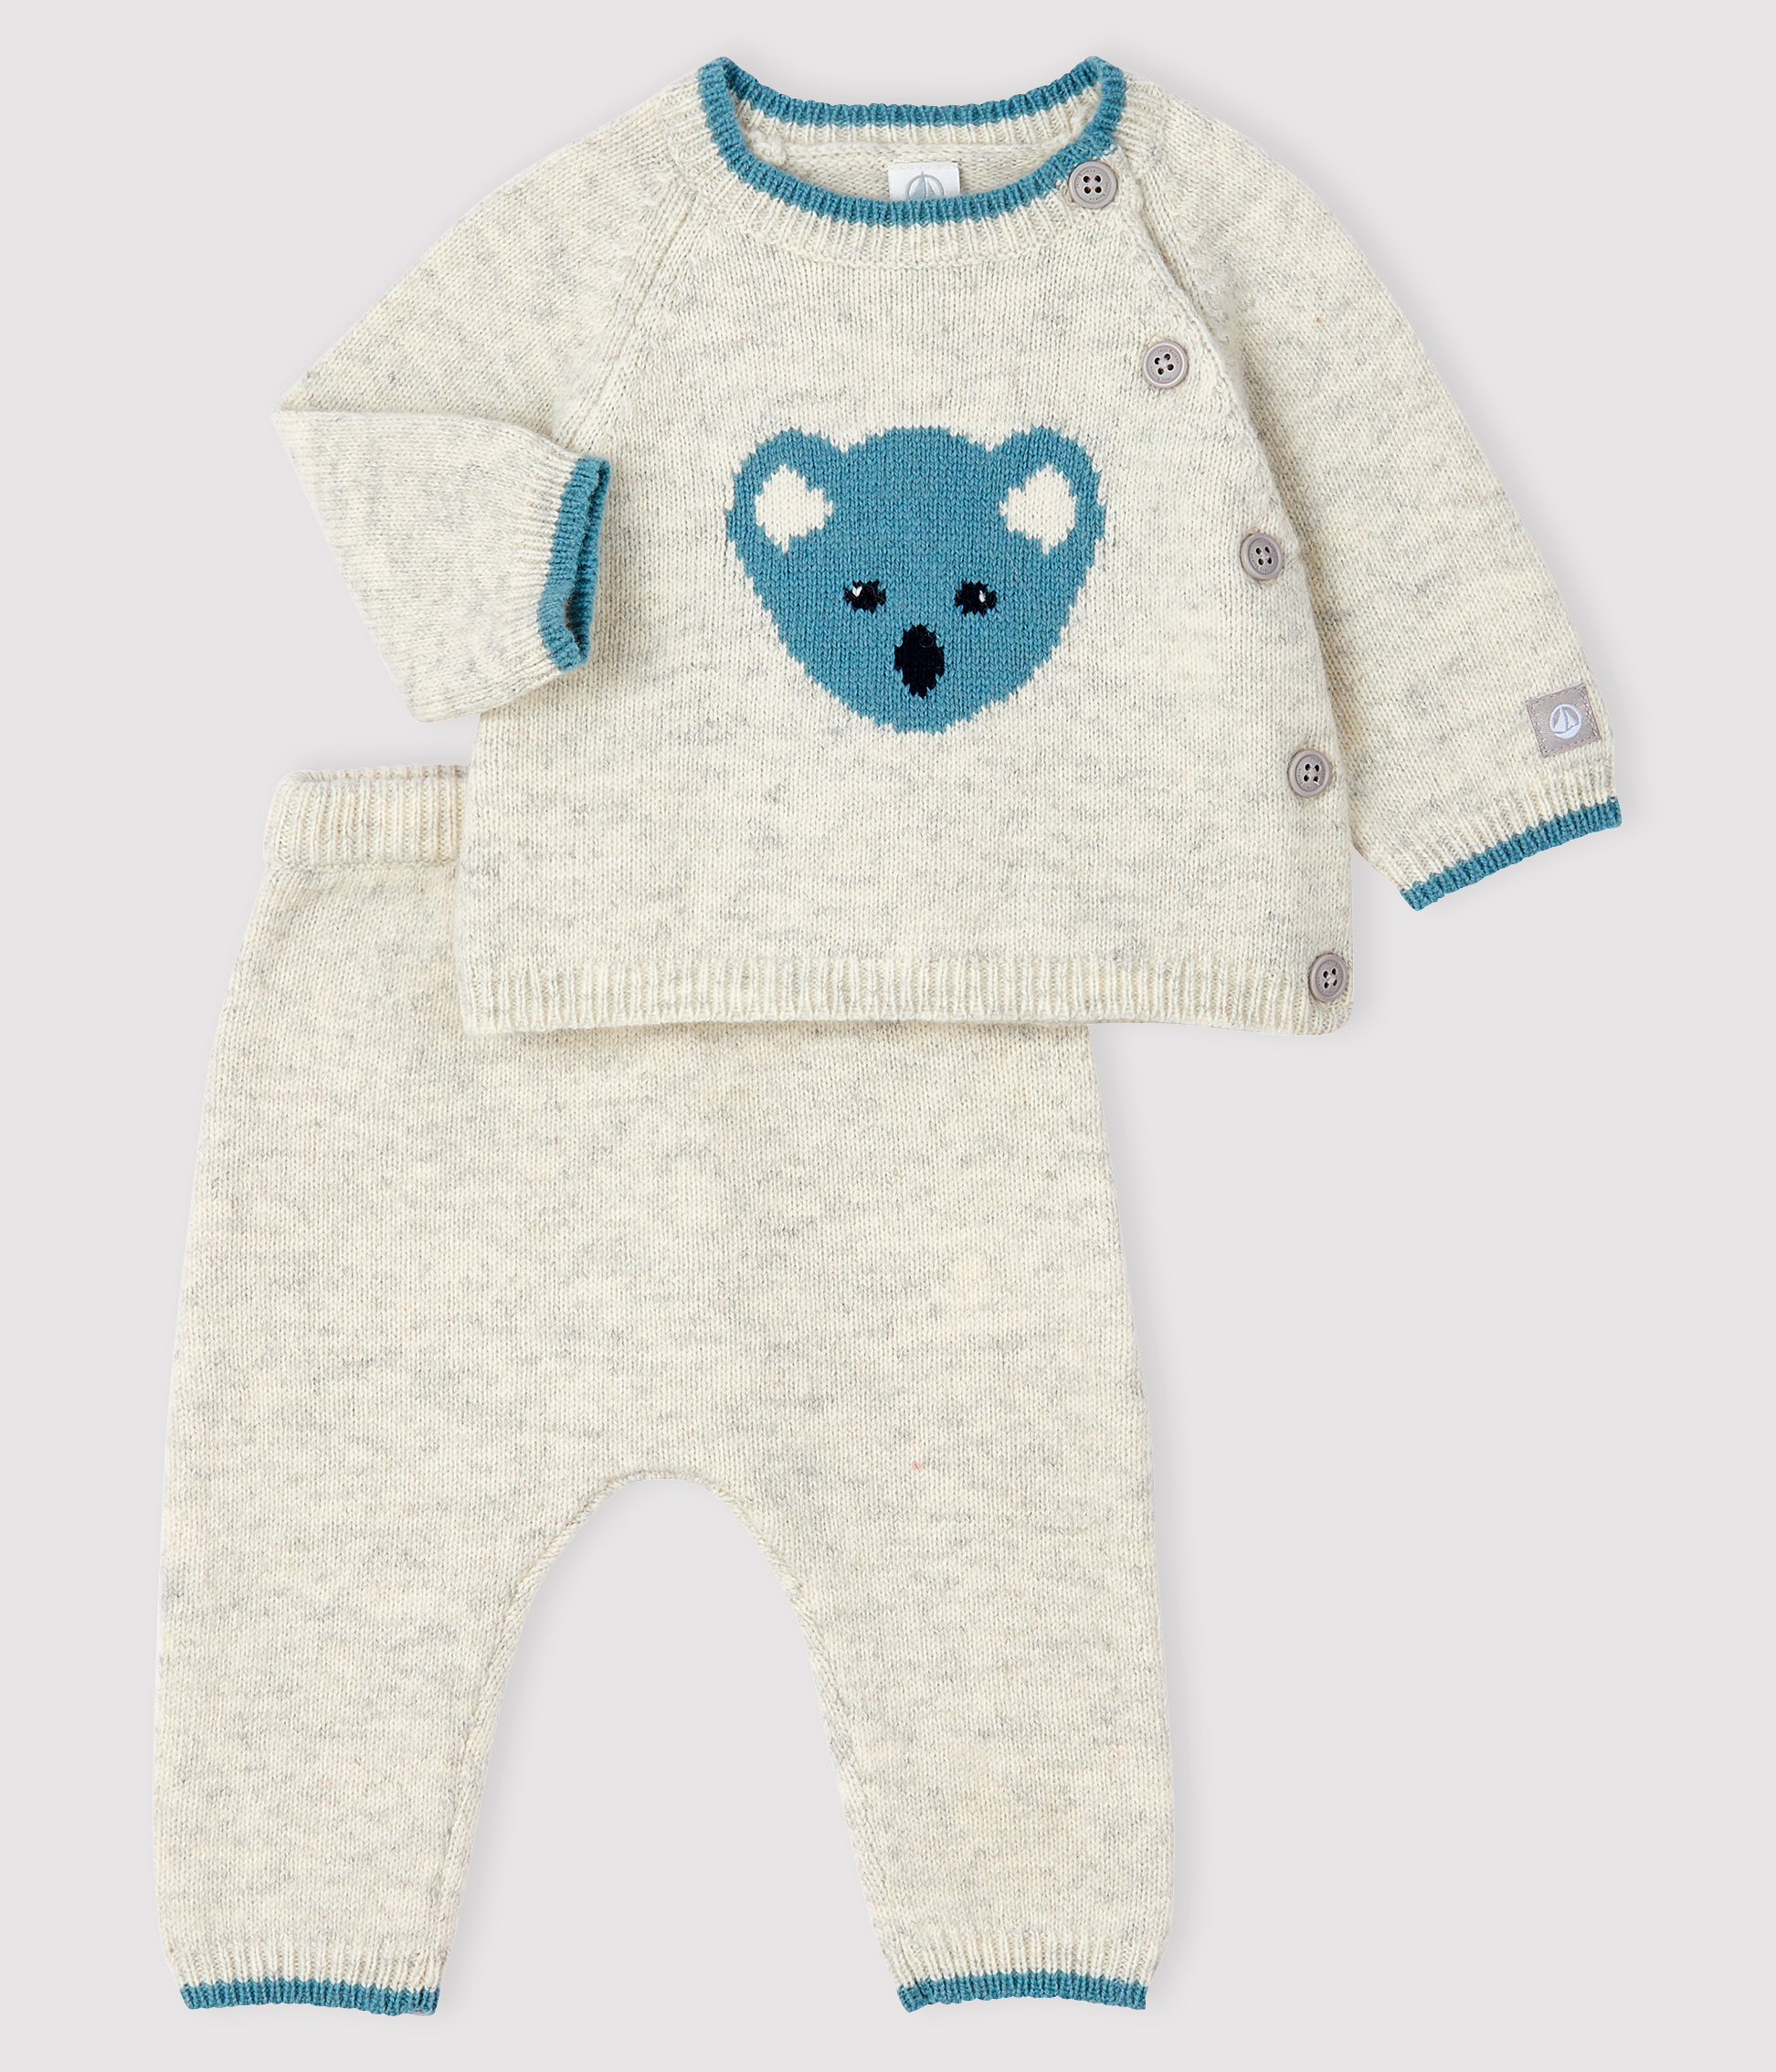 2-piece jacquard knit baby set